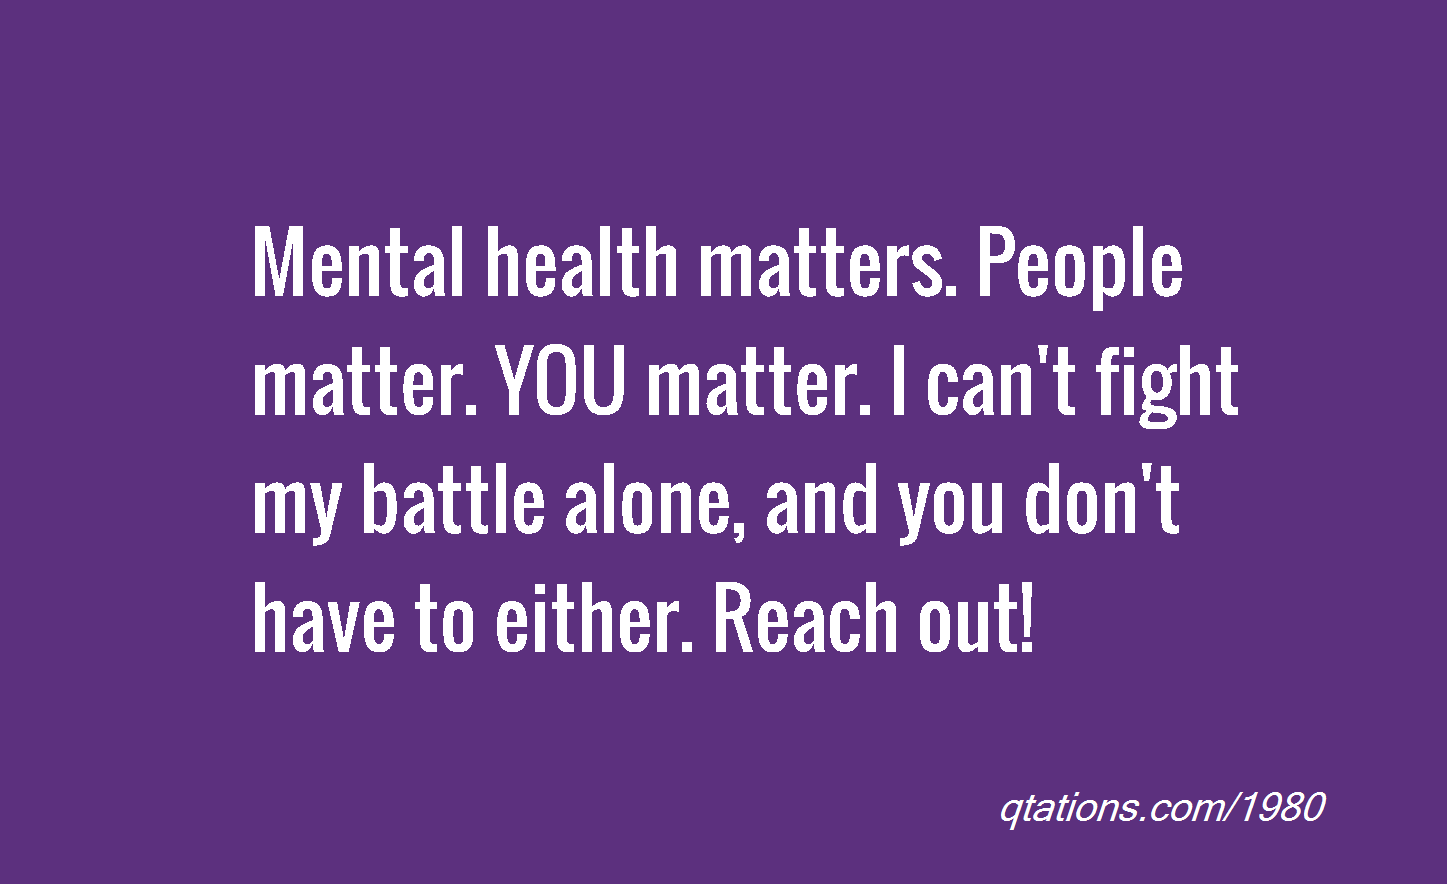 quotes about fighting mental illness quotesgram